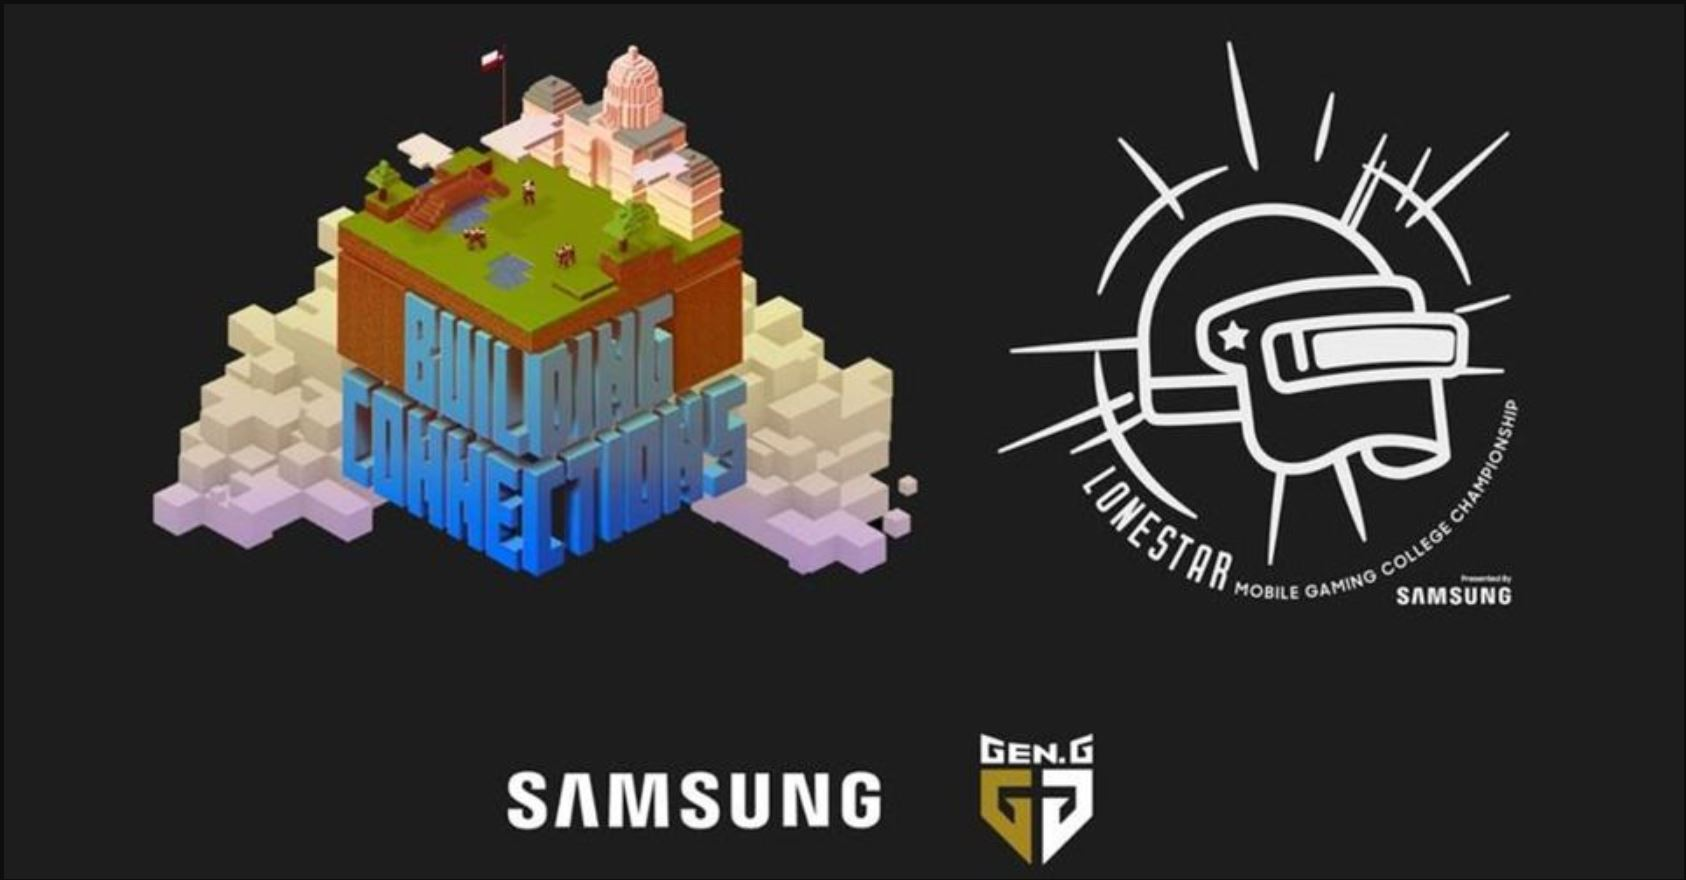 Gen.G Esports Hosting The Minecraft Pocket Edition Build Tournament: Celebrity Judges Includes Booker-T, Ryguyrocky, and Shubble